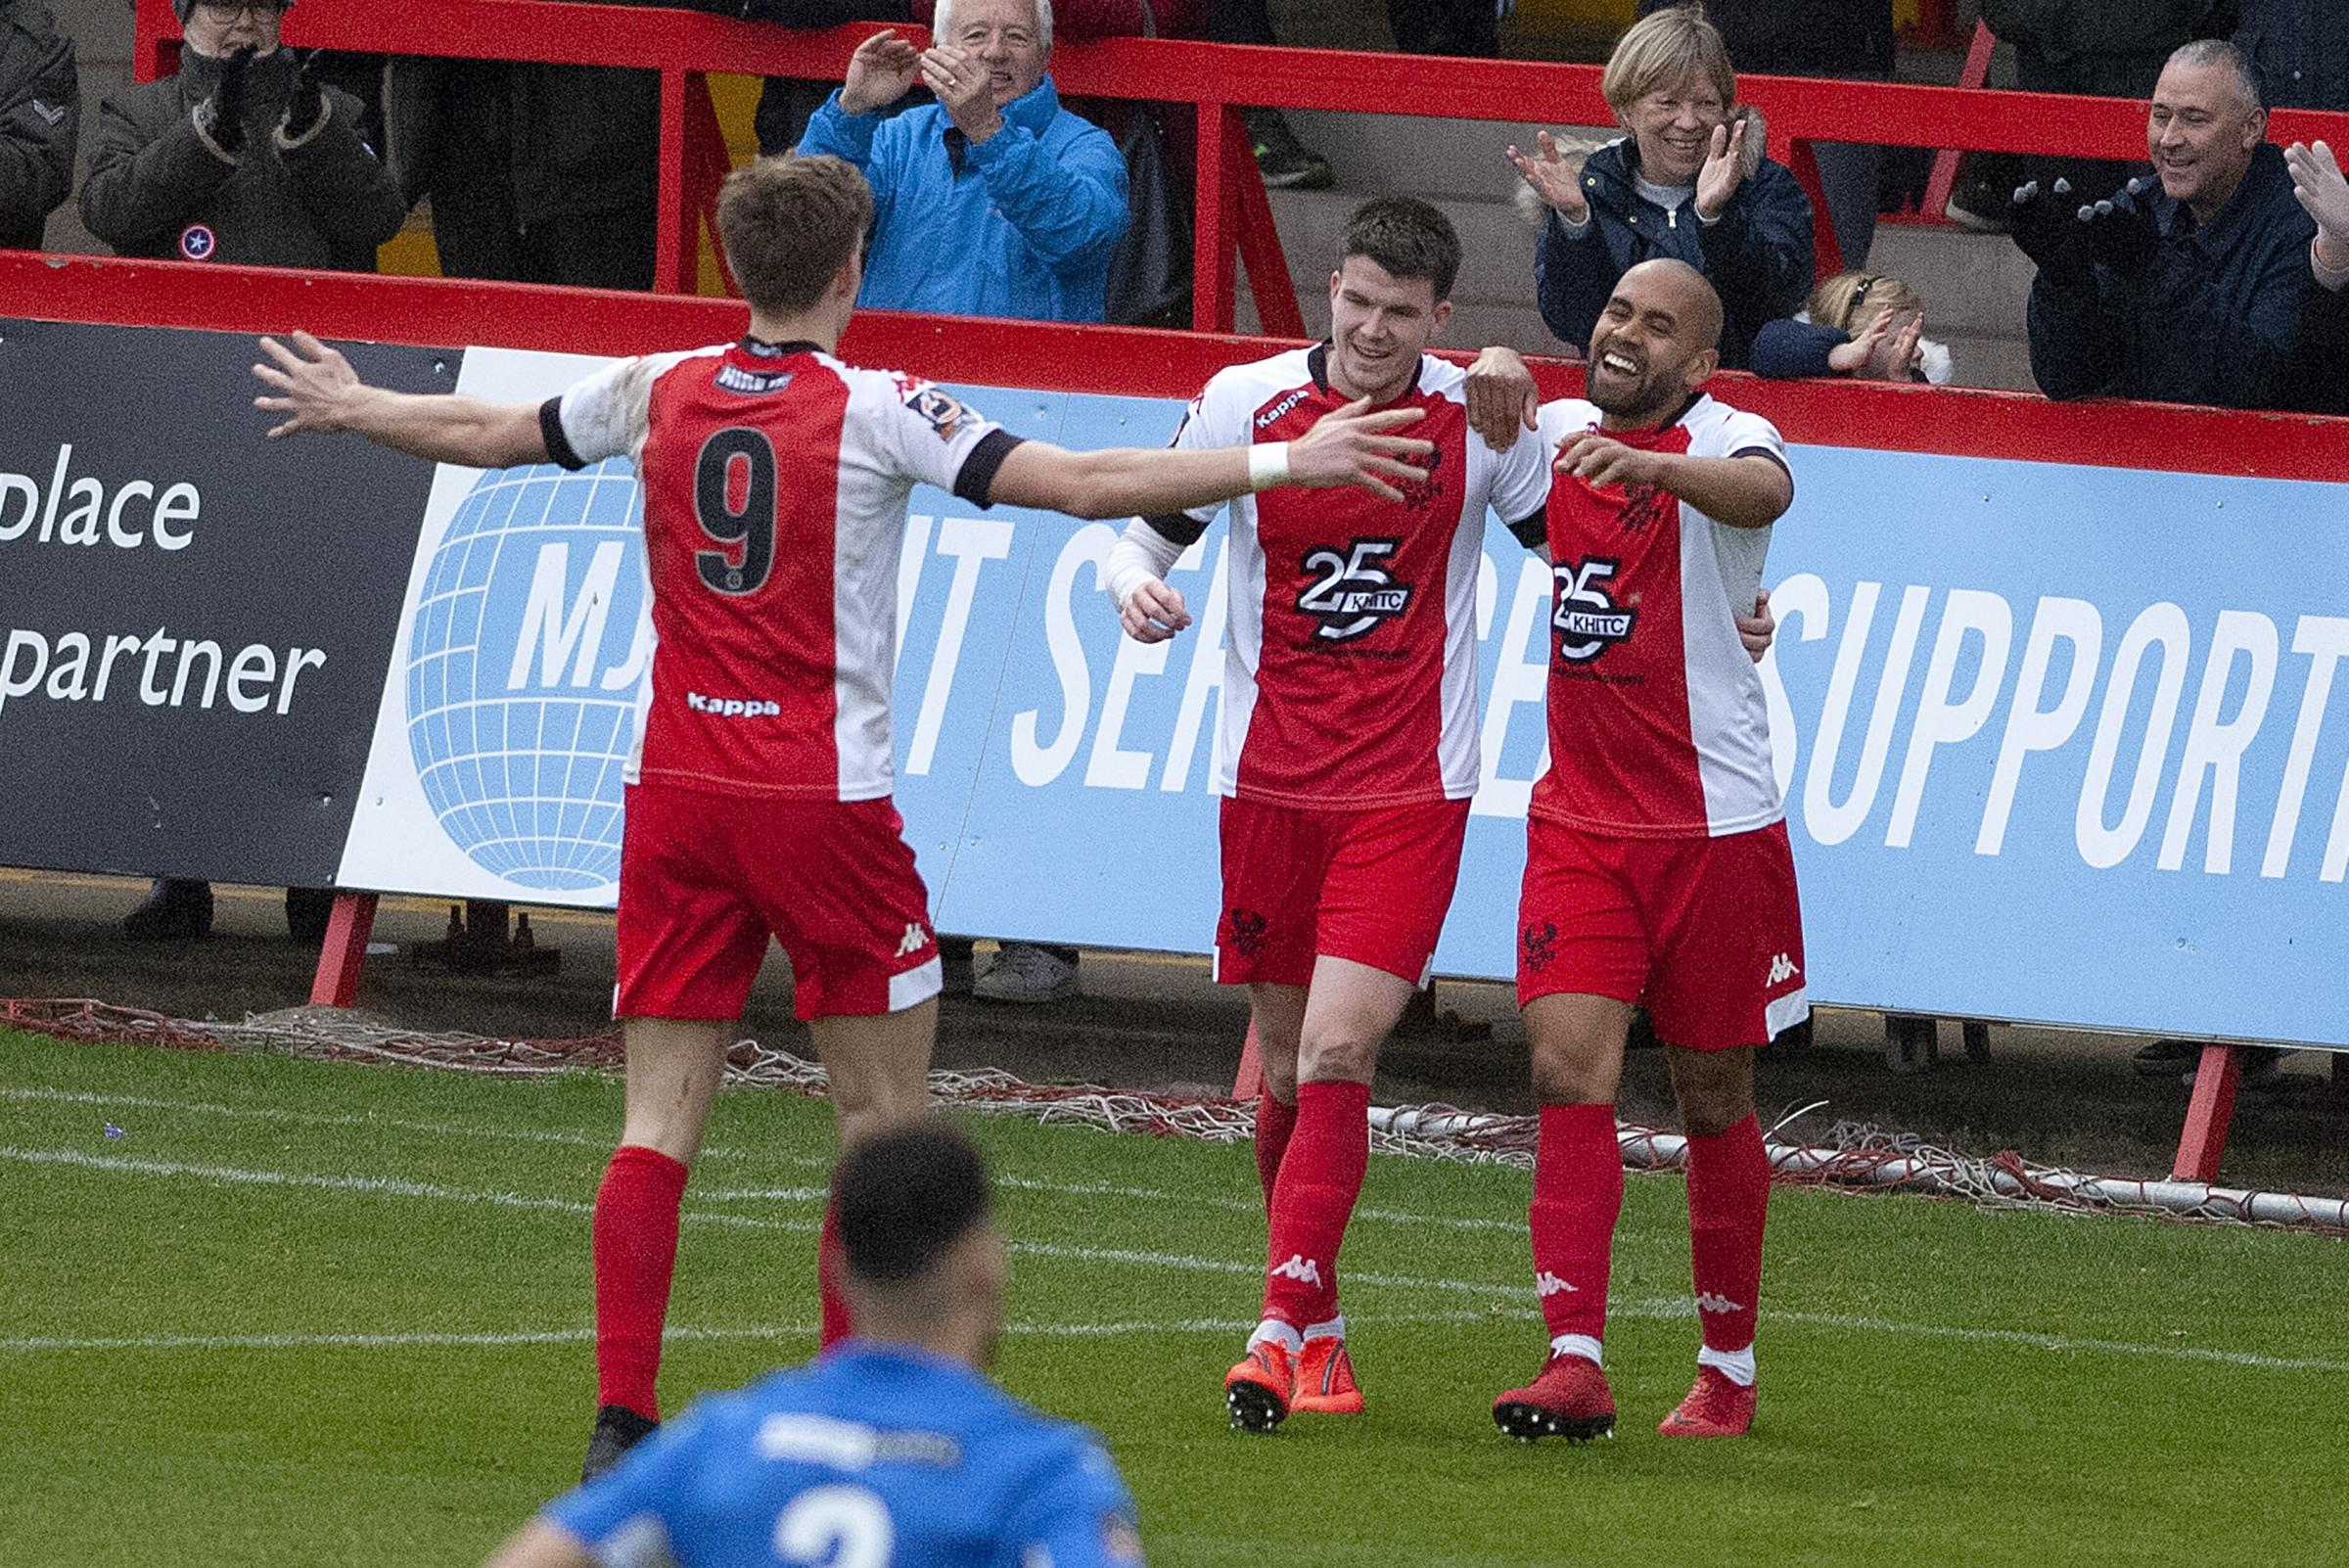 Hat-trick hero Ash Chambers celebrates against Nuneaton. Photo by Paul France.